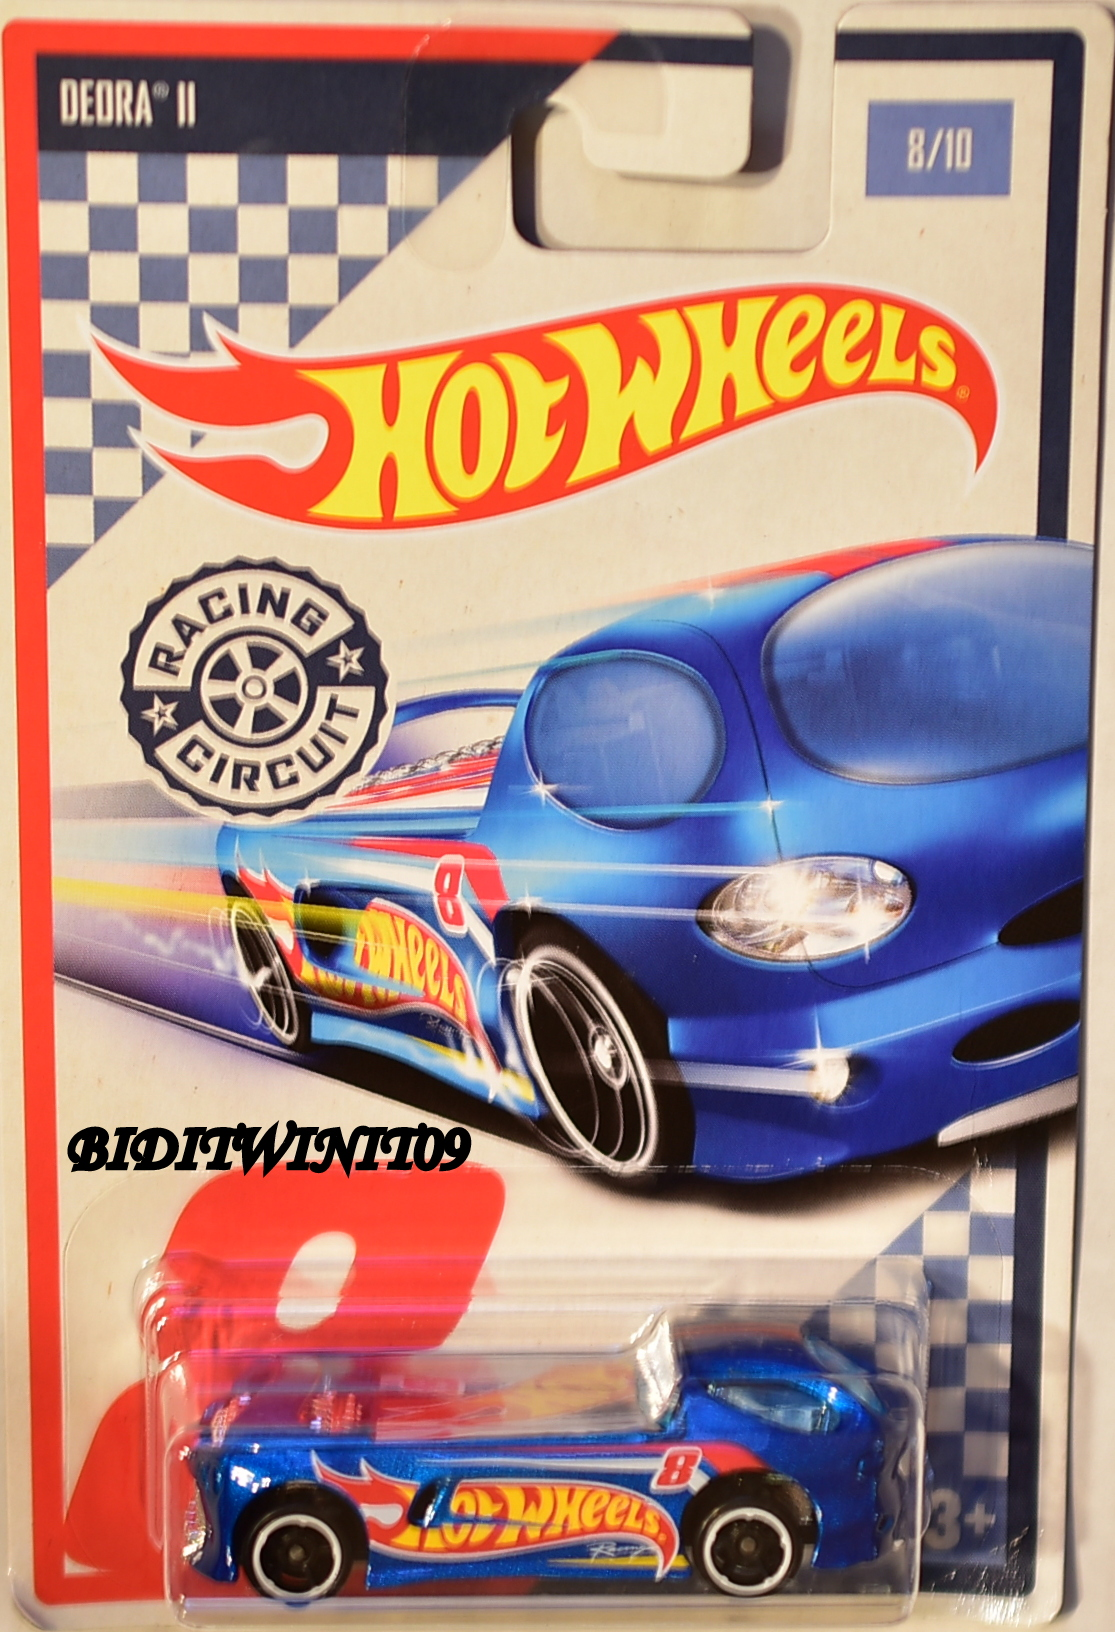 HOT WHEELS RACING CIRCUIT #8/10 DEORA II